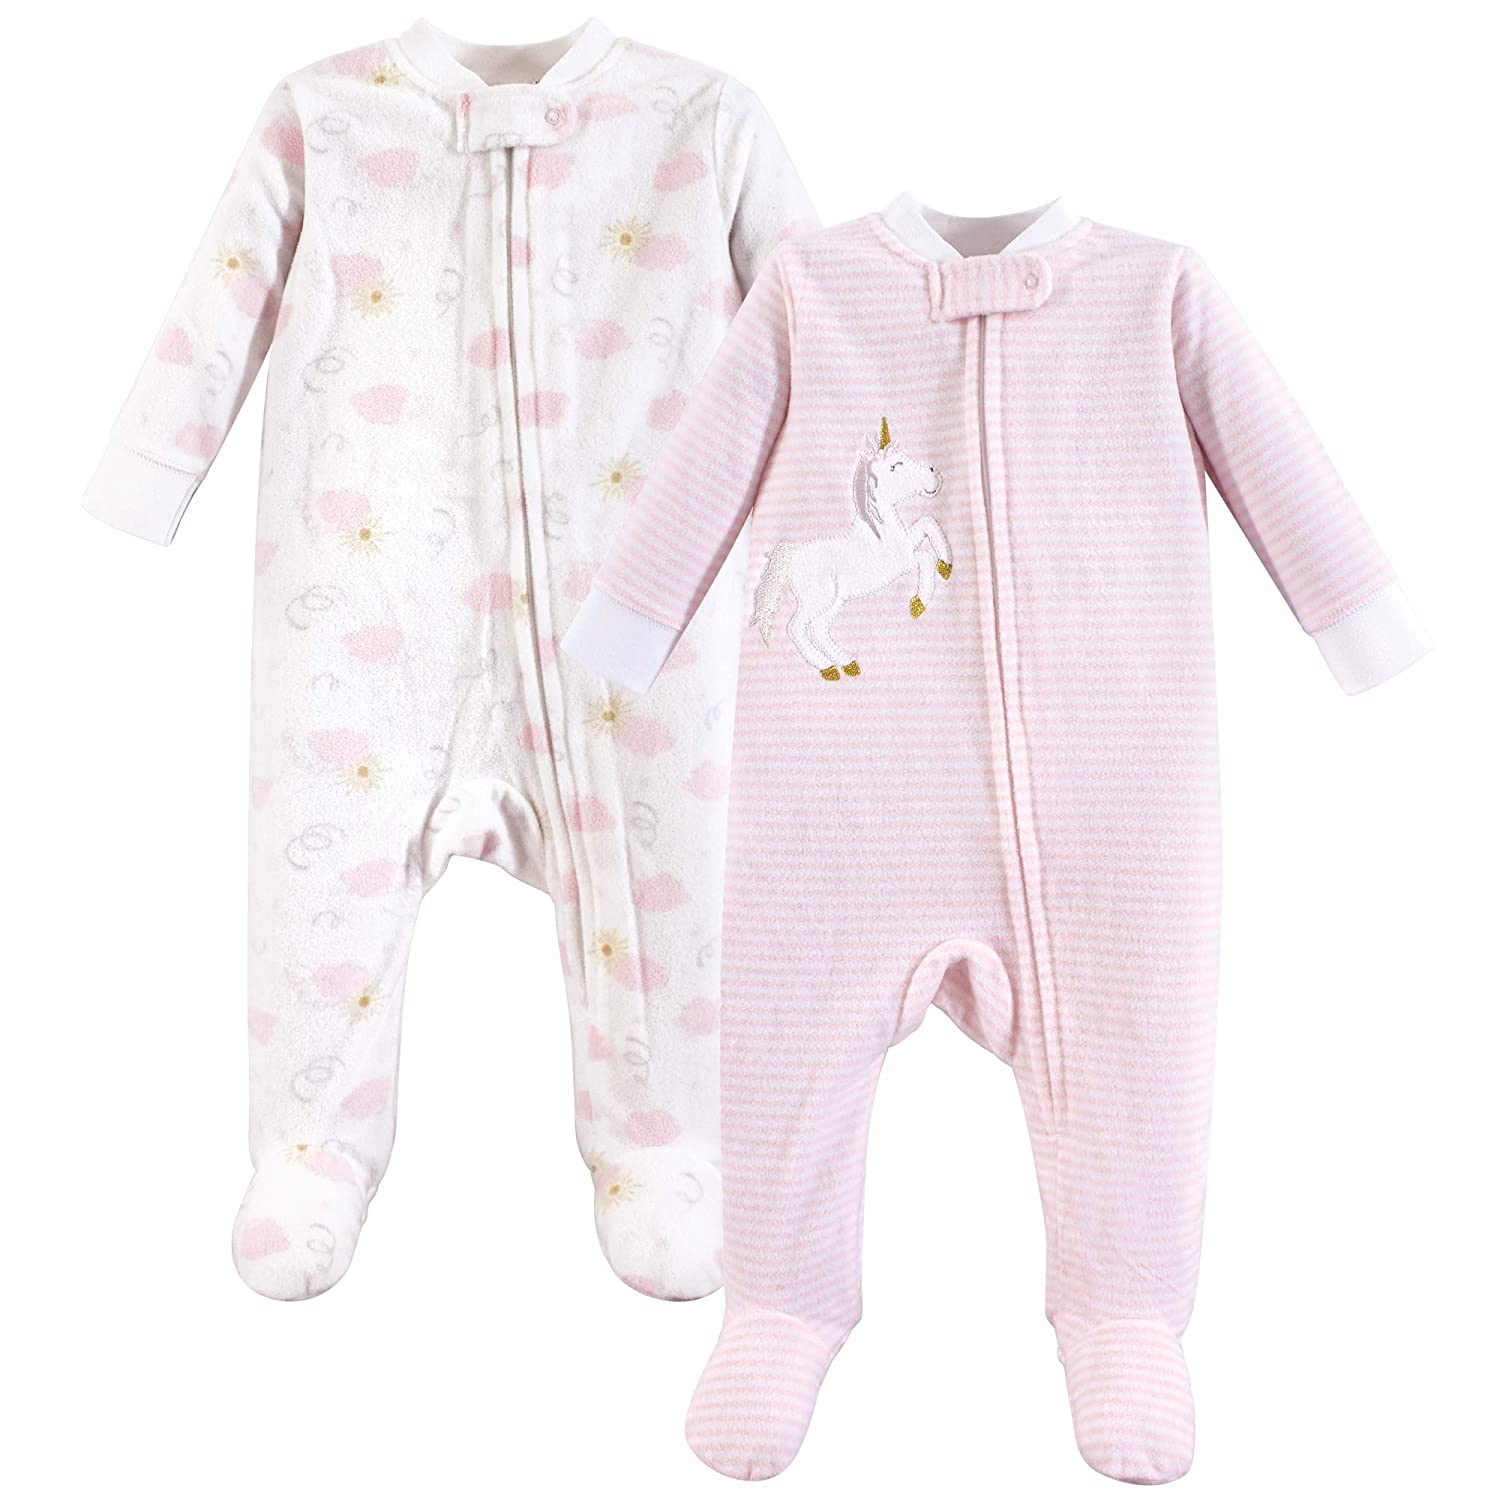 Yoga Sprout Baby Fleece Sleep and Play, 2 Pack, Unicorn, 6-9 Months (9M) Yoga Sprout Children' s Apparel 92283L